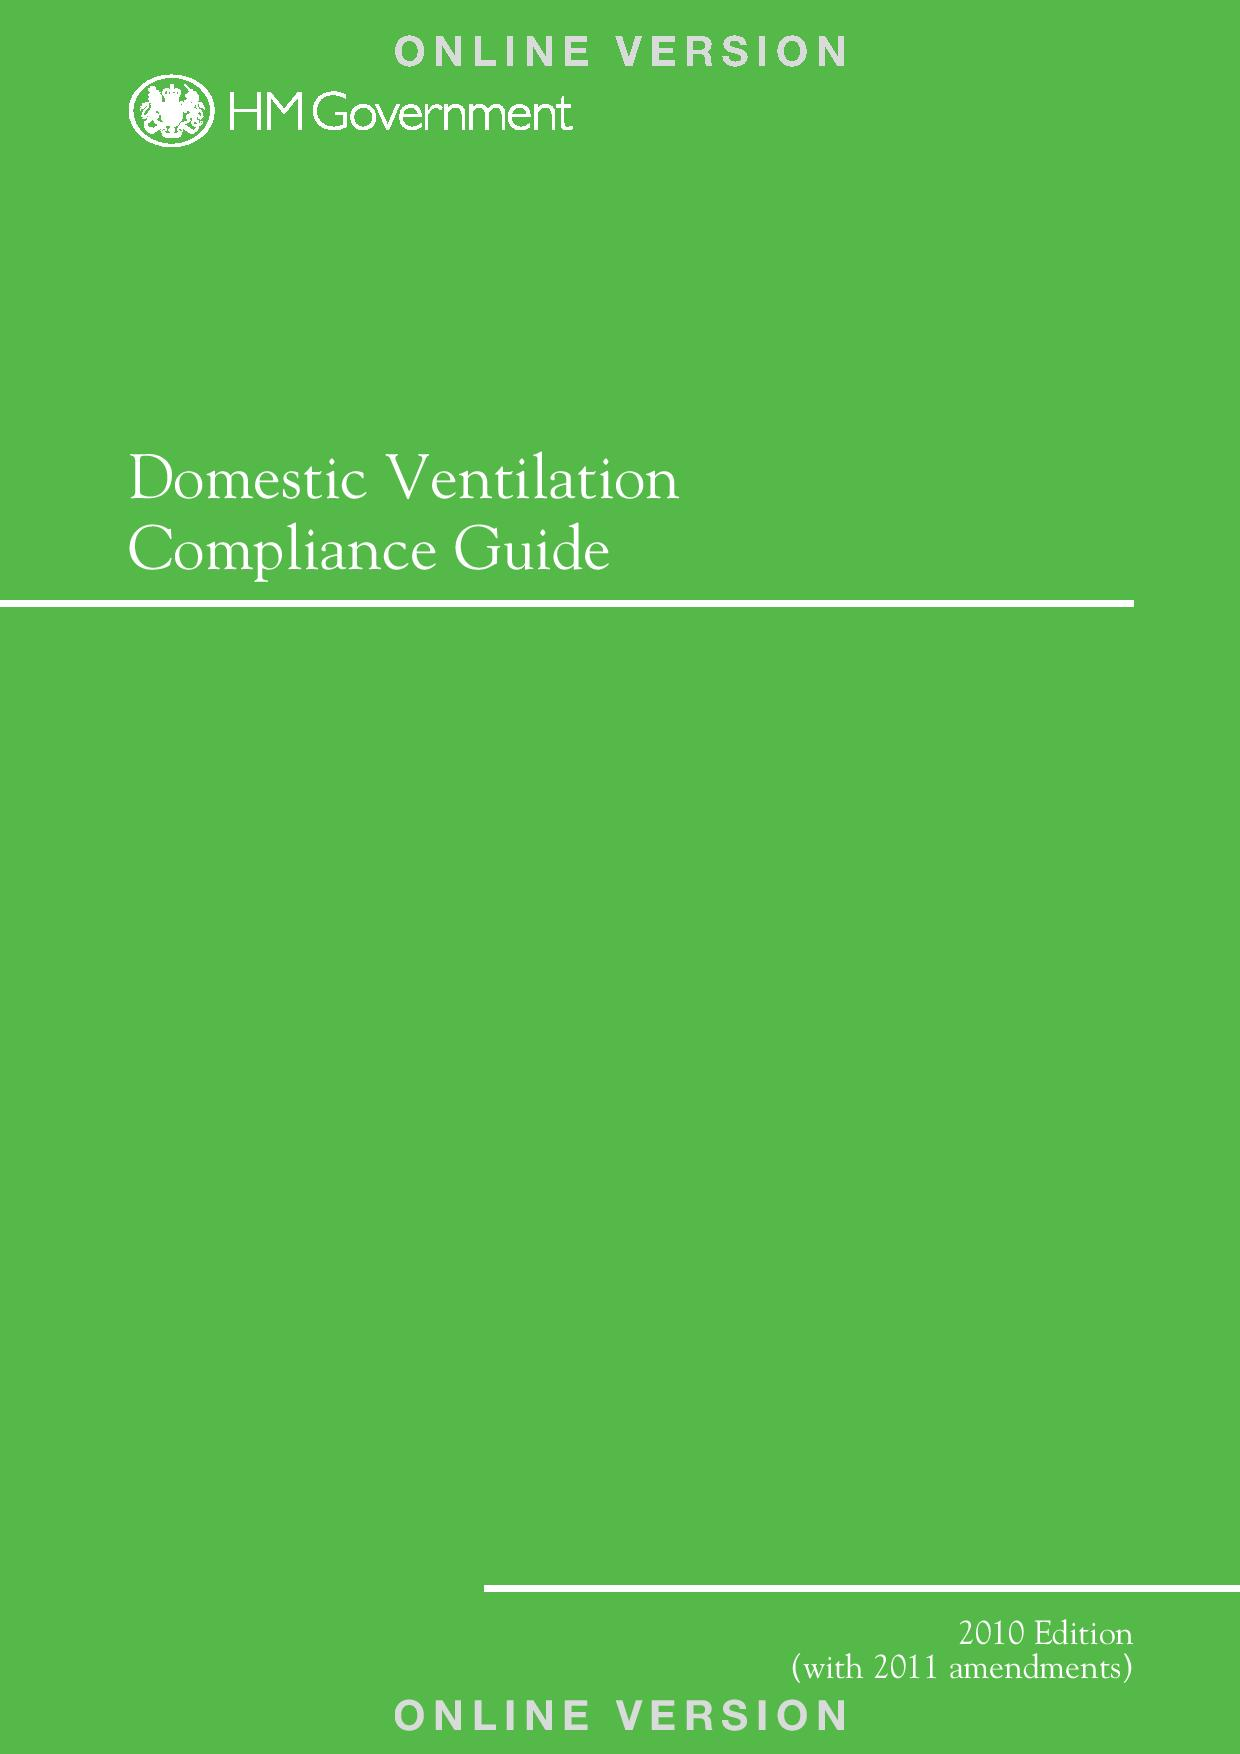 domestic_ventilation_compliance_guide_2010-page-001